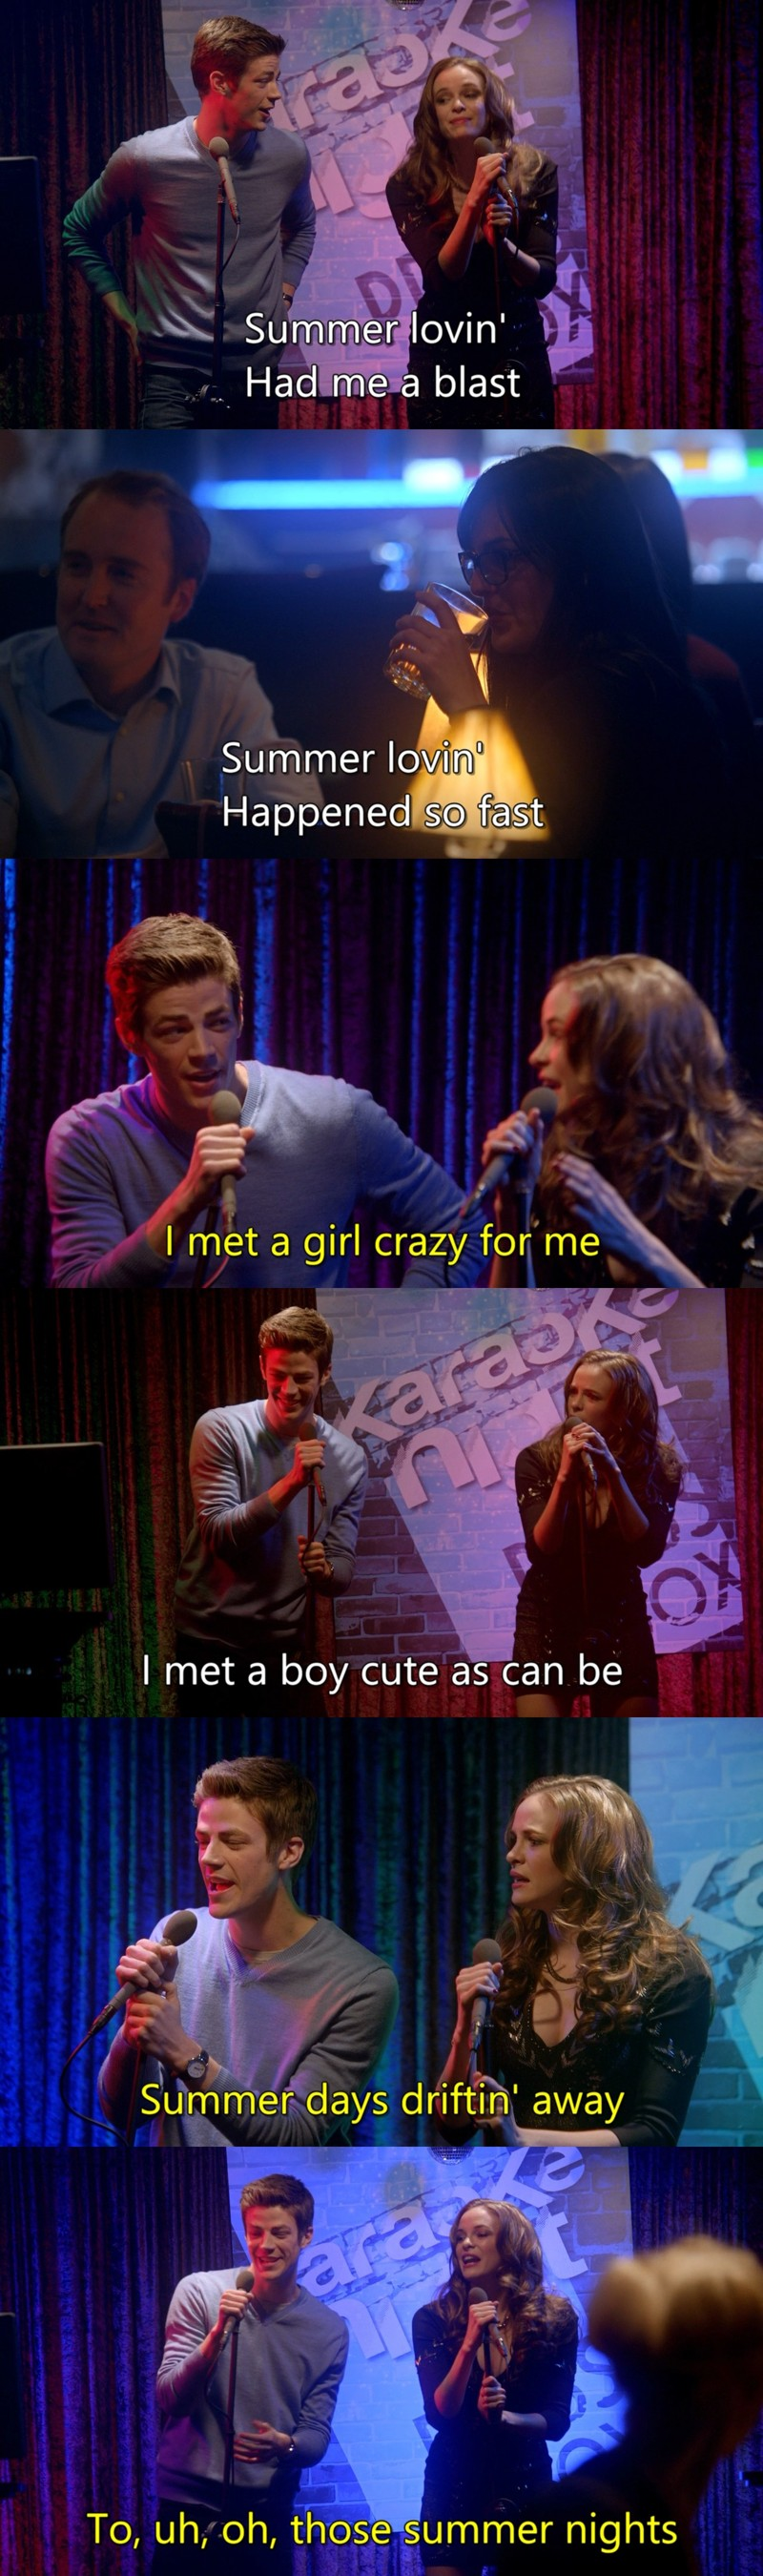 This scene was the best, they should do karaoke more often.